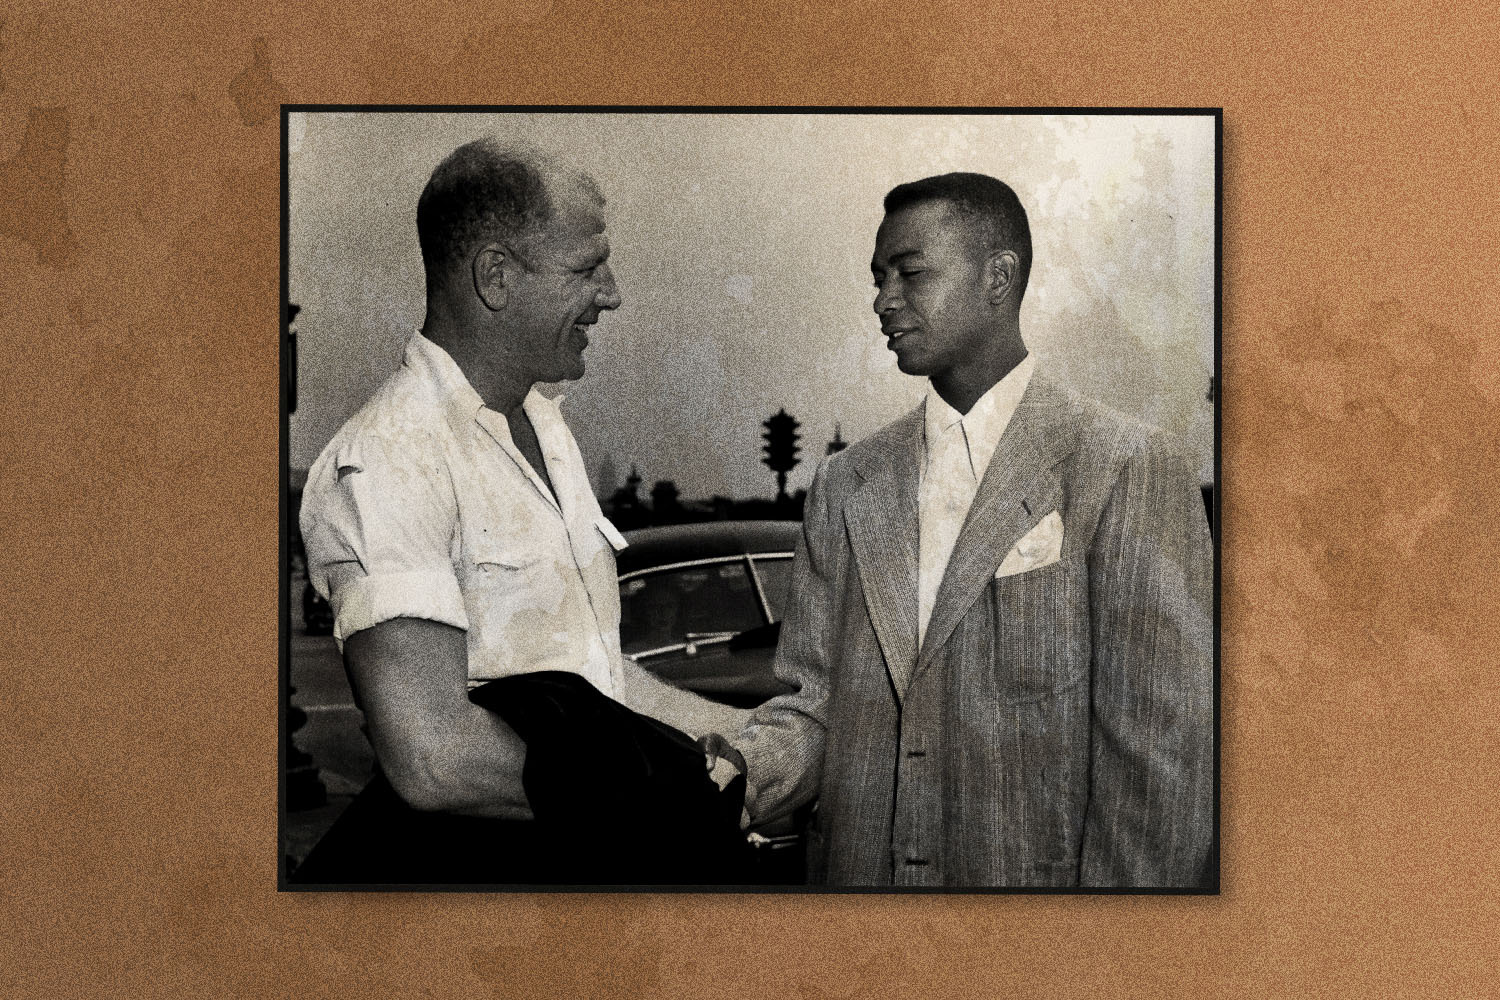 Doby shakes hands with his new boss, President Bill Veeck of the Cleveland Indians', after arriving in Chicago